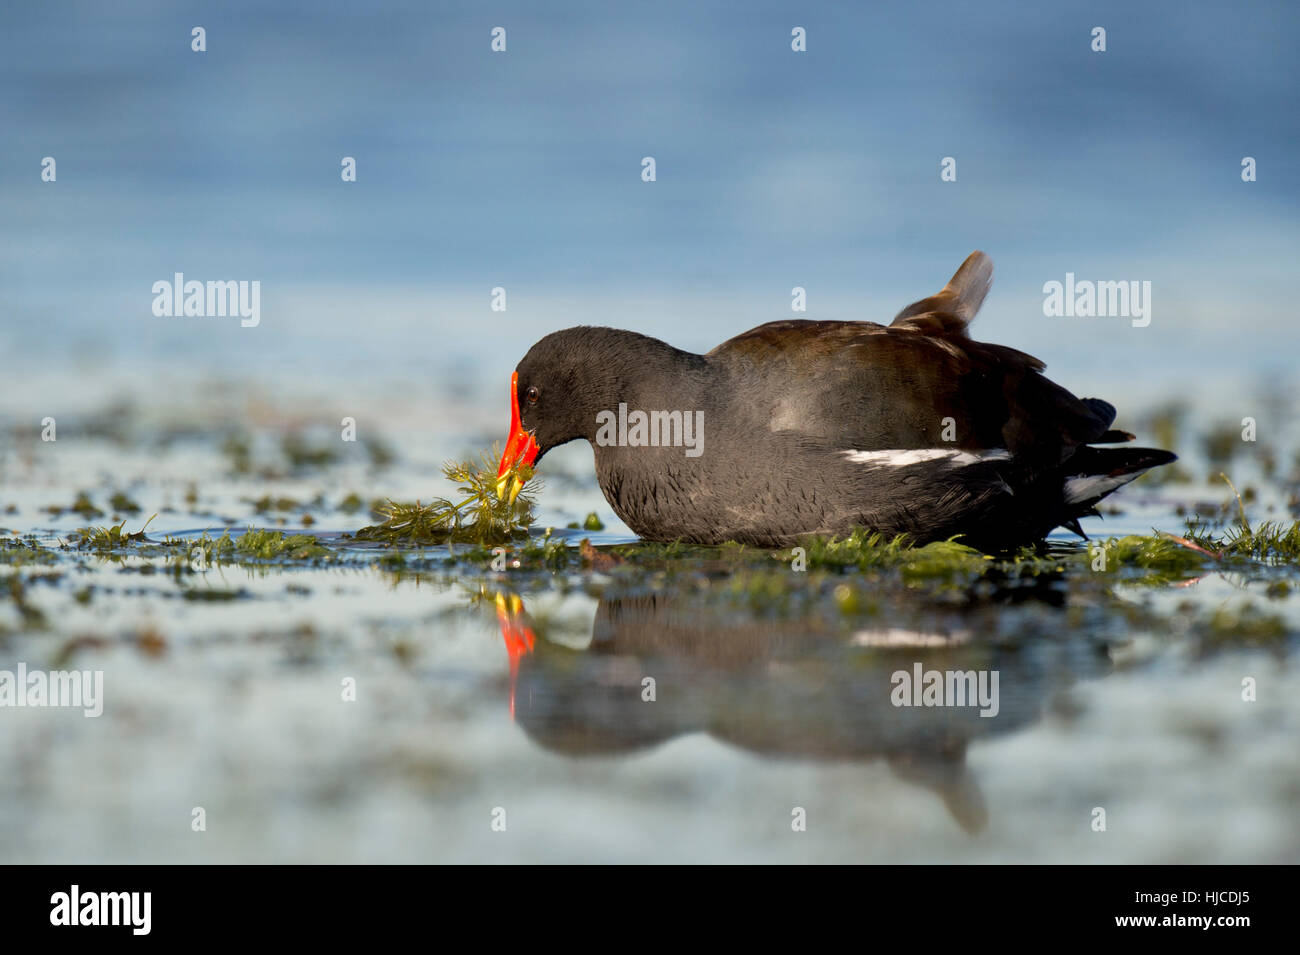 A Common Gallinule feeds on water vegetation in the shallow water with a reflection of the bird. Stock Photo